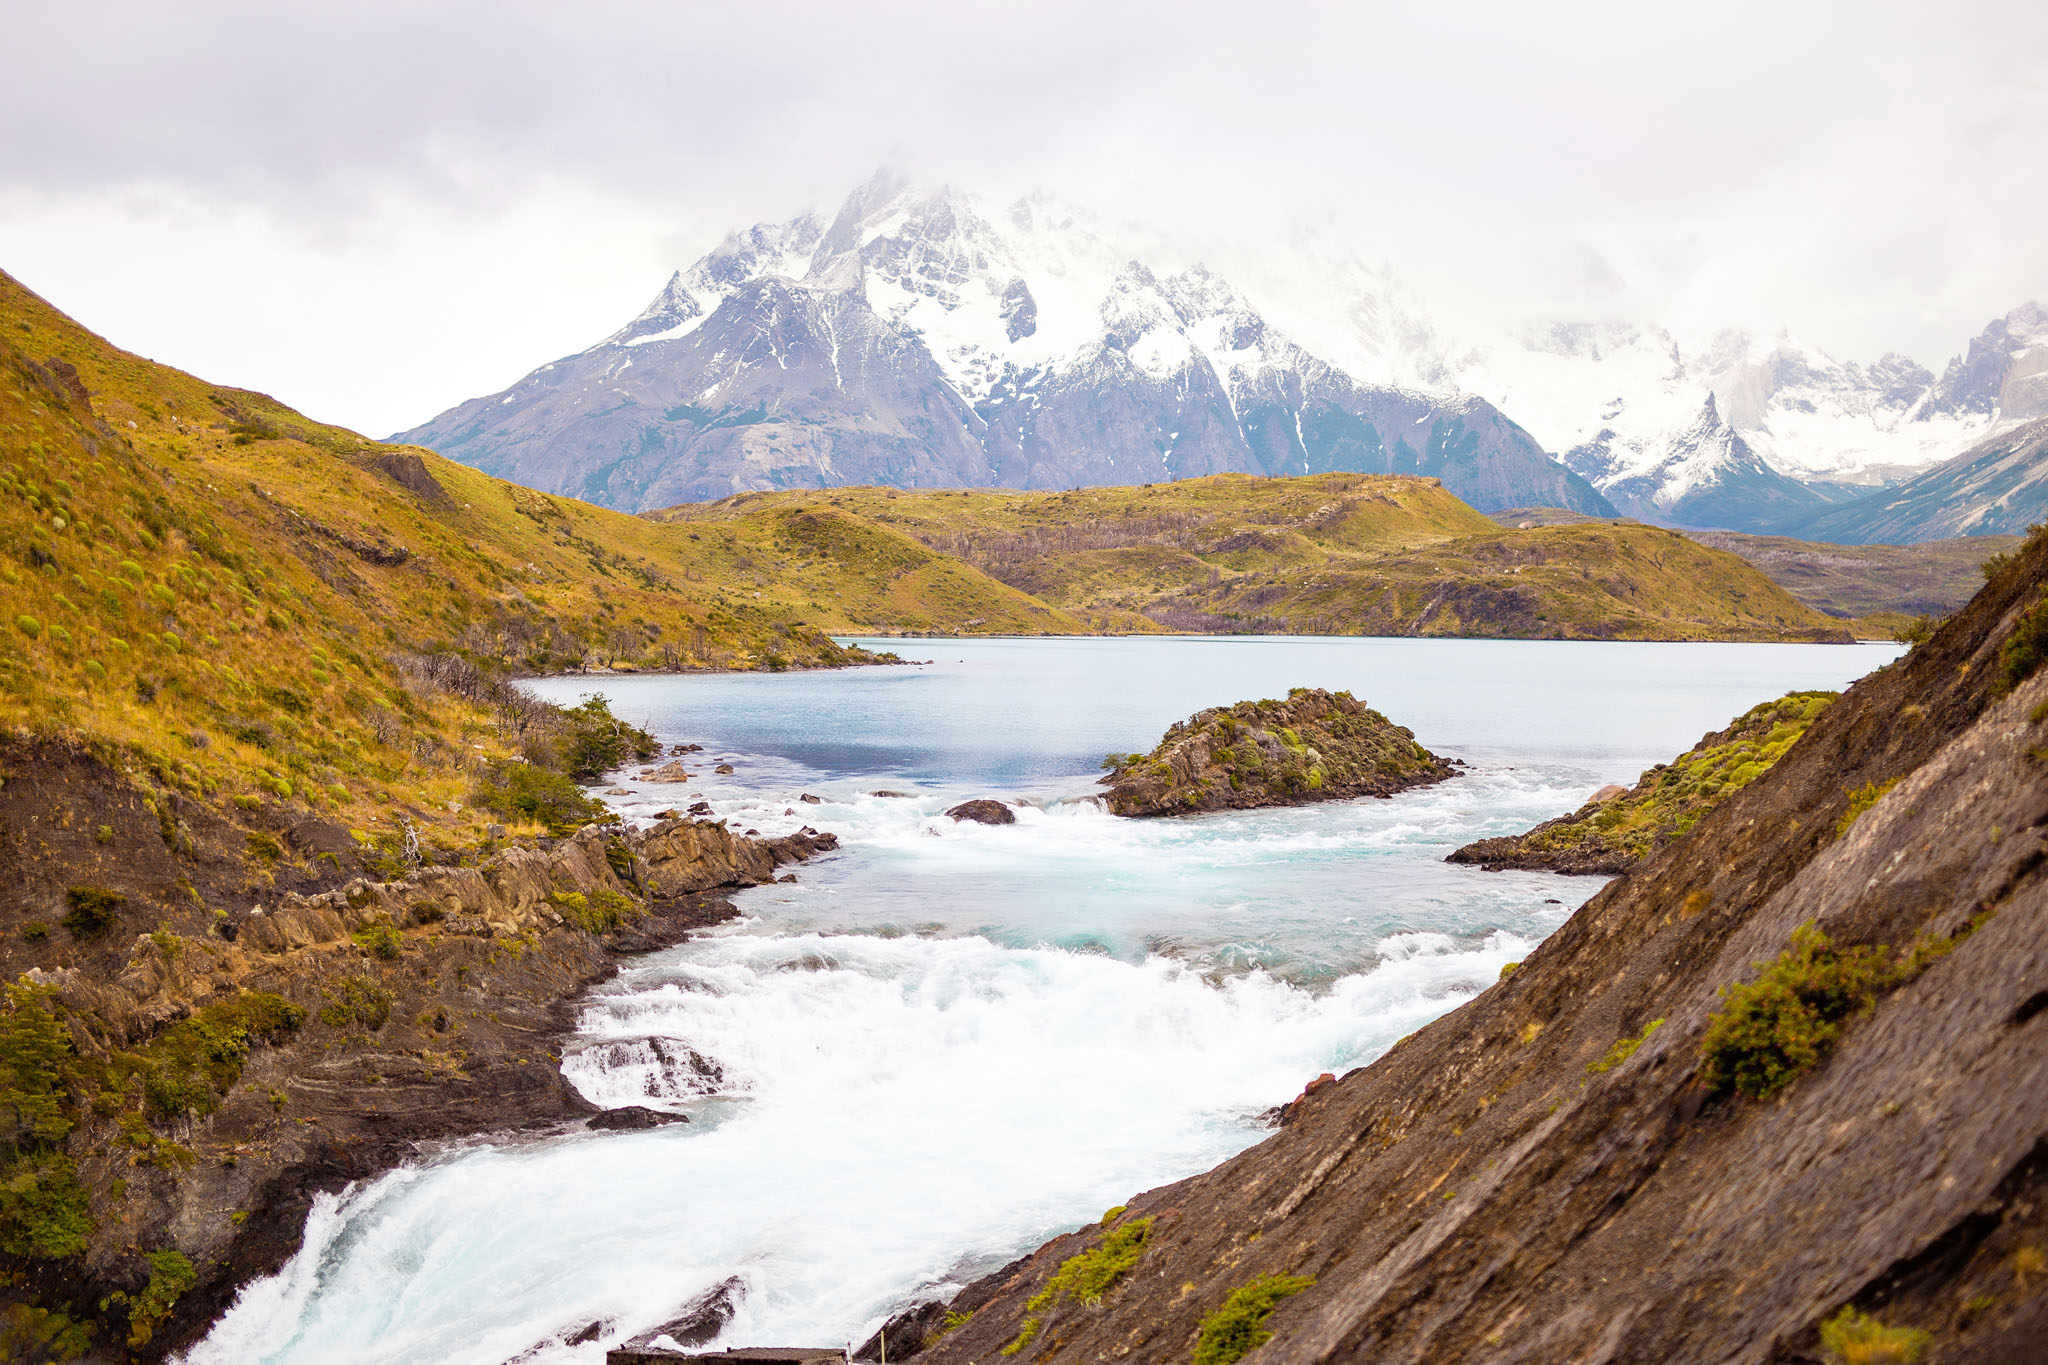 Wedding-Travellers-Overlanding-Destination-Wedding-Chile-Torres-del-Paine-small-waterfall-salto-chico